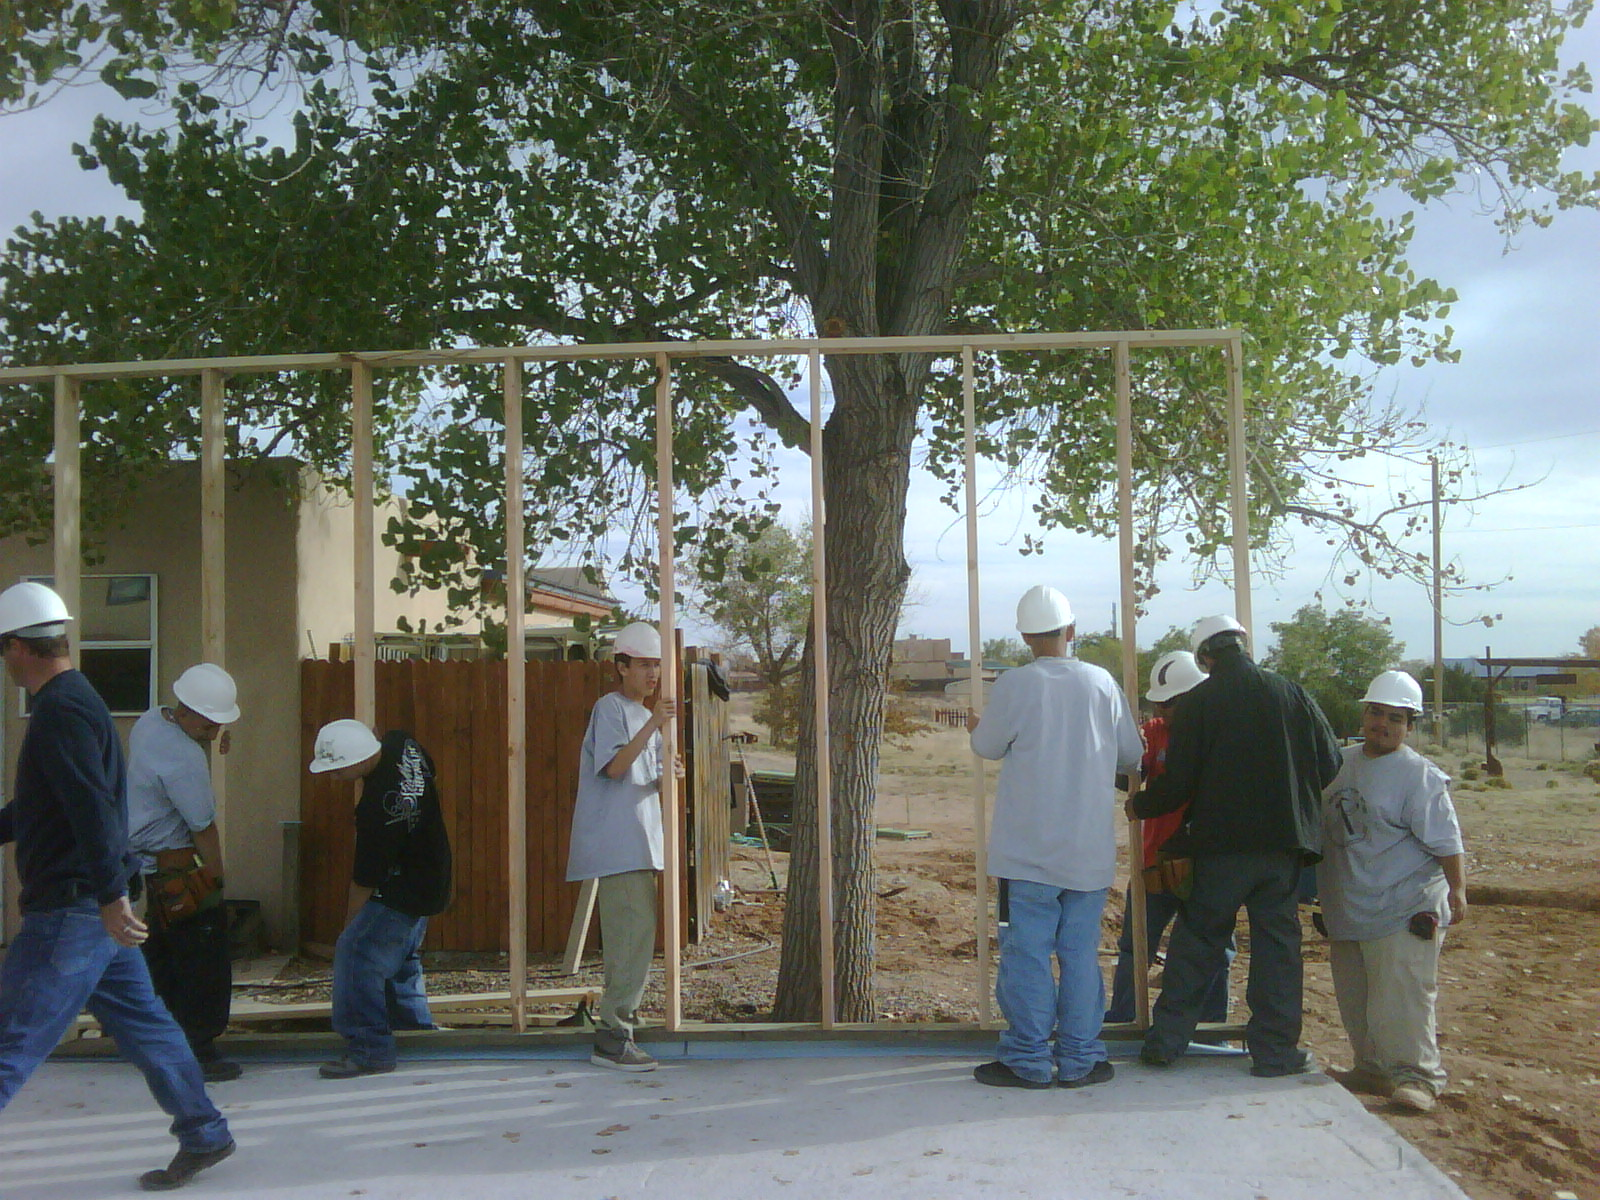 YouthBuild crew works on framing house they're building with Habitat for Humanity.